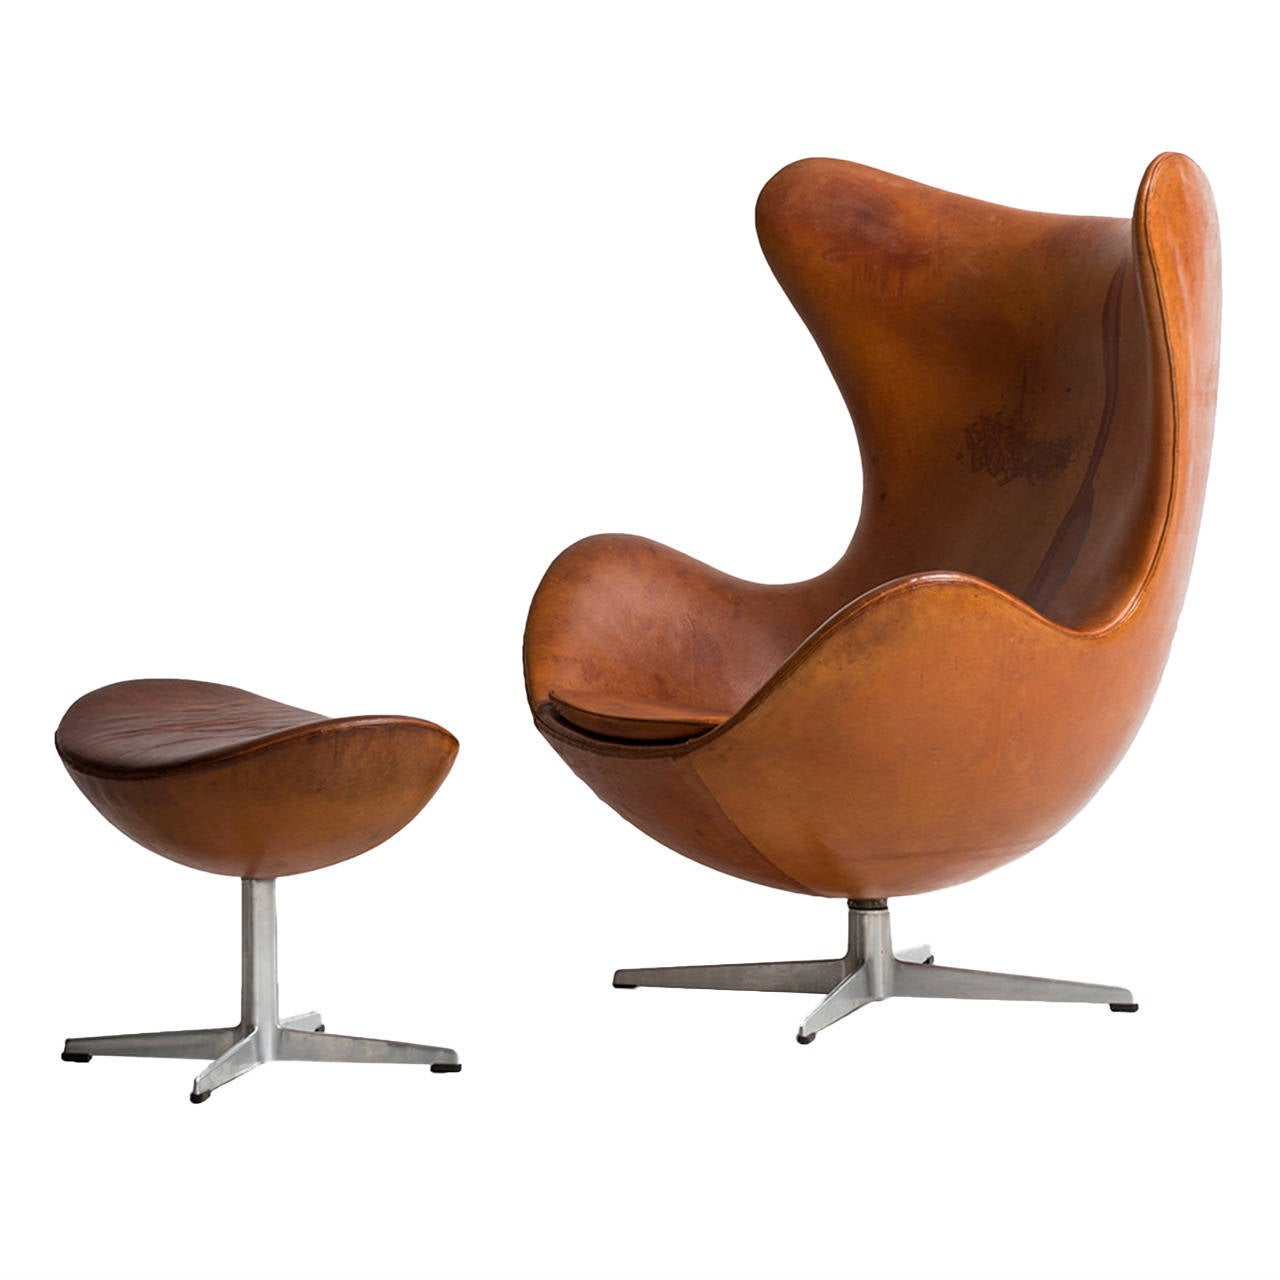 arne jacobsen egg chair in original cognac brown leather. Black Bedroom Furniture Sets. Home Design Ideas